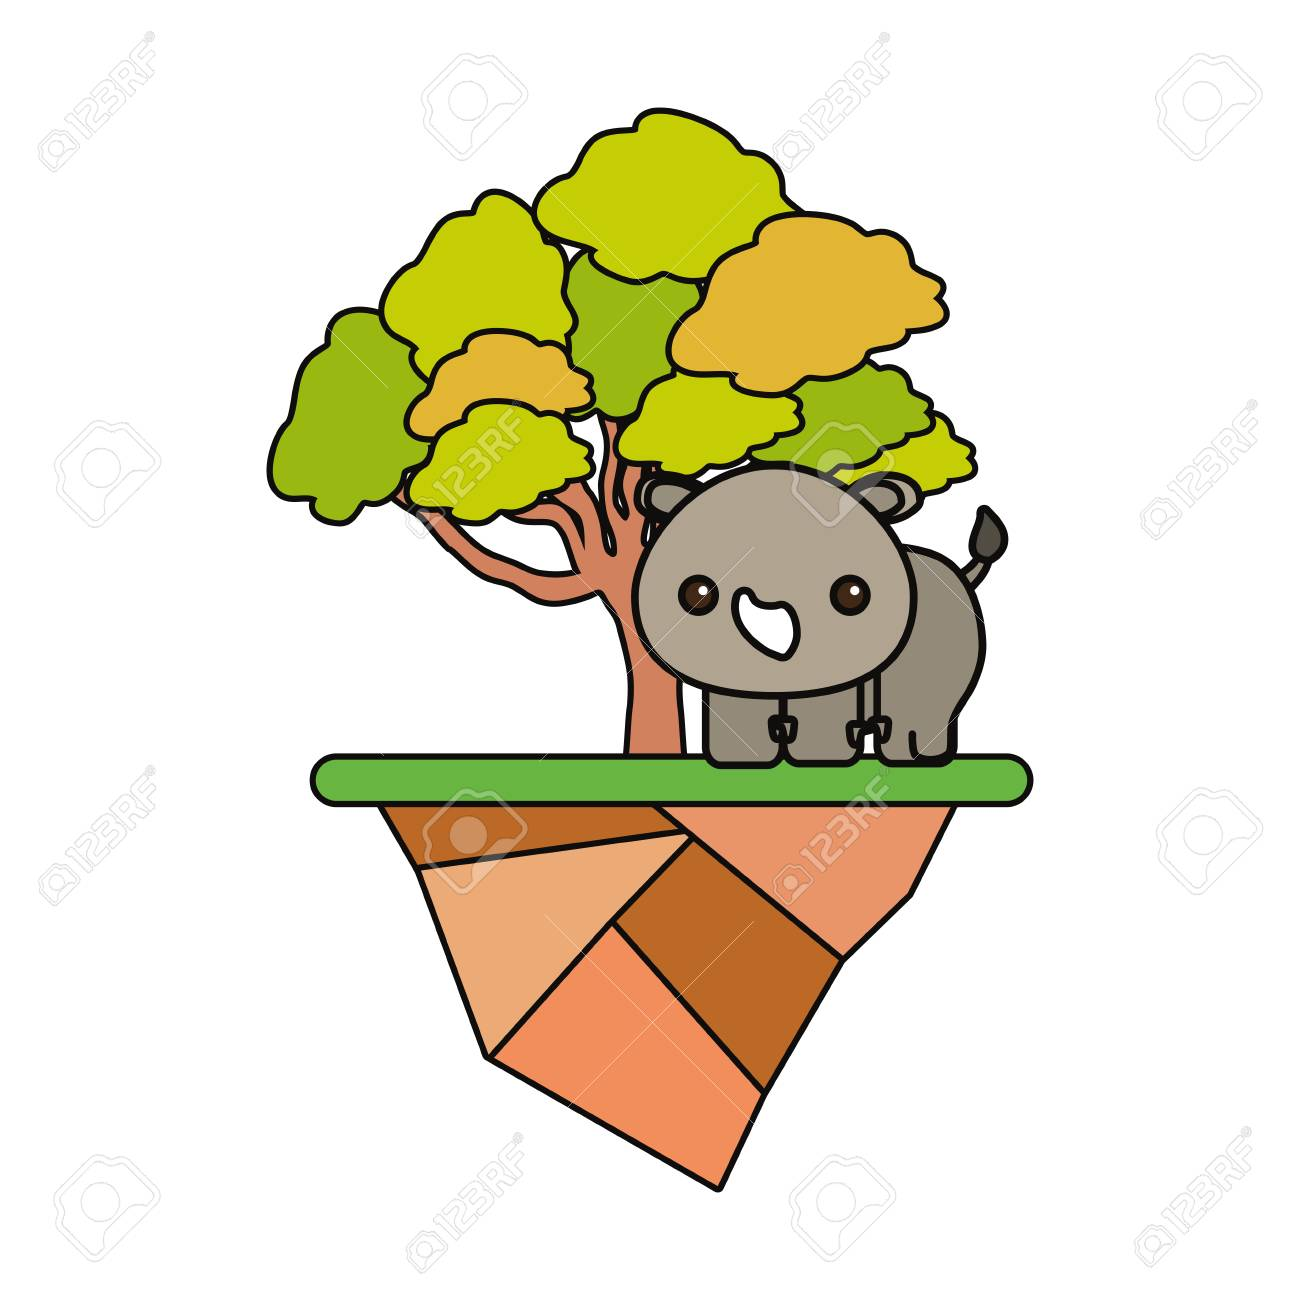 Floating island with trees and cute rhino icon over white illustration